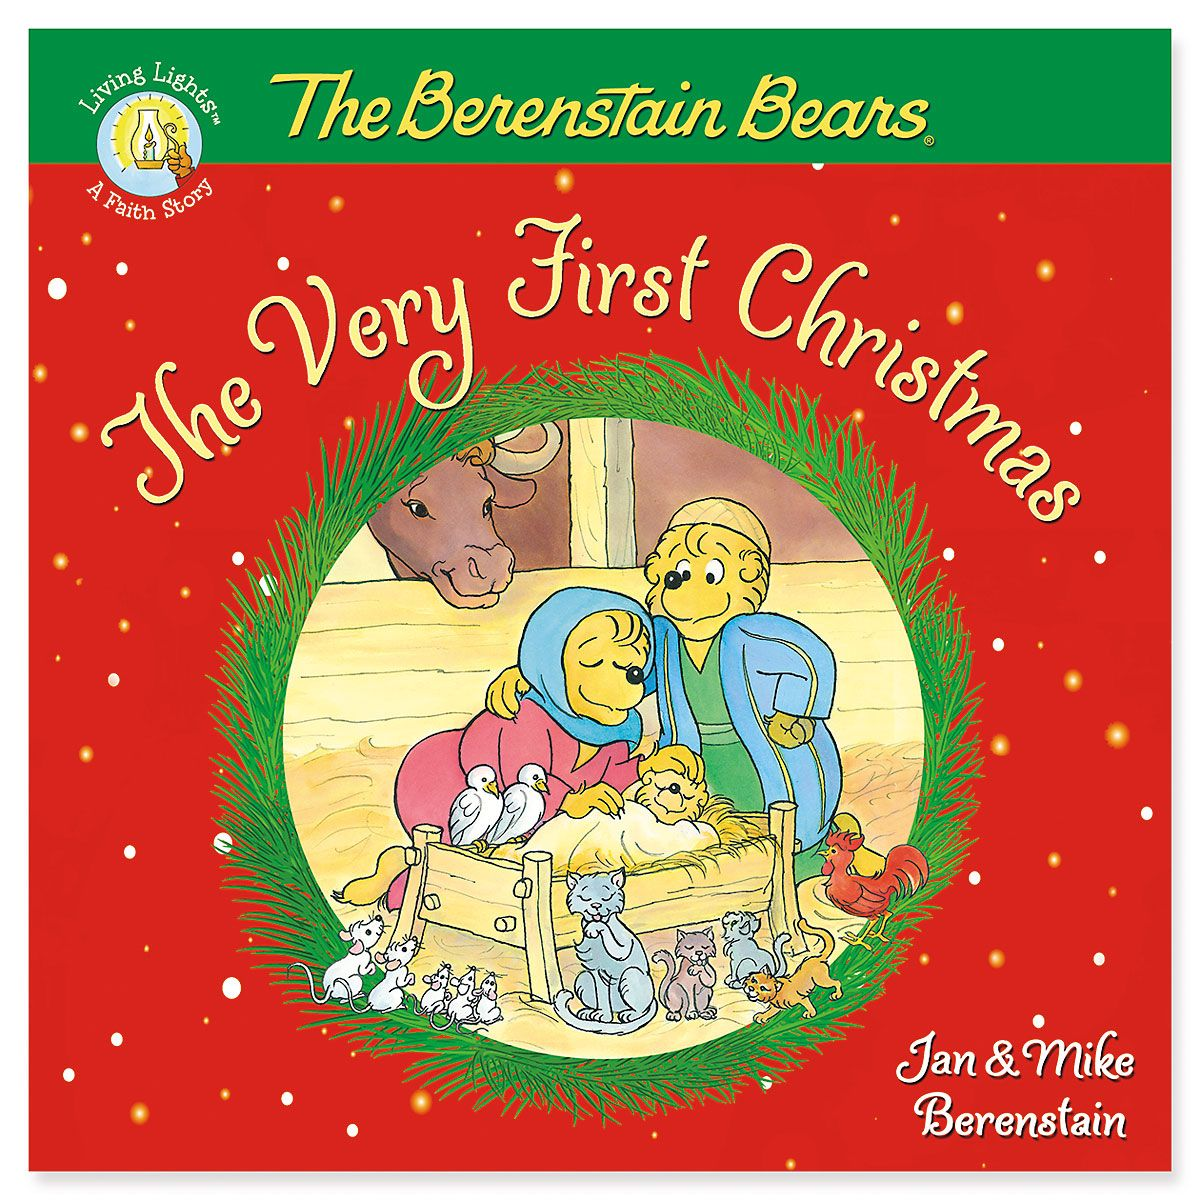 Berenstain Bears® Christmas Books